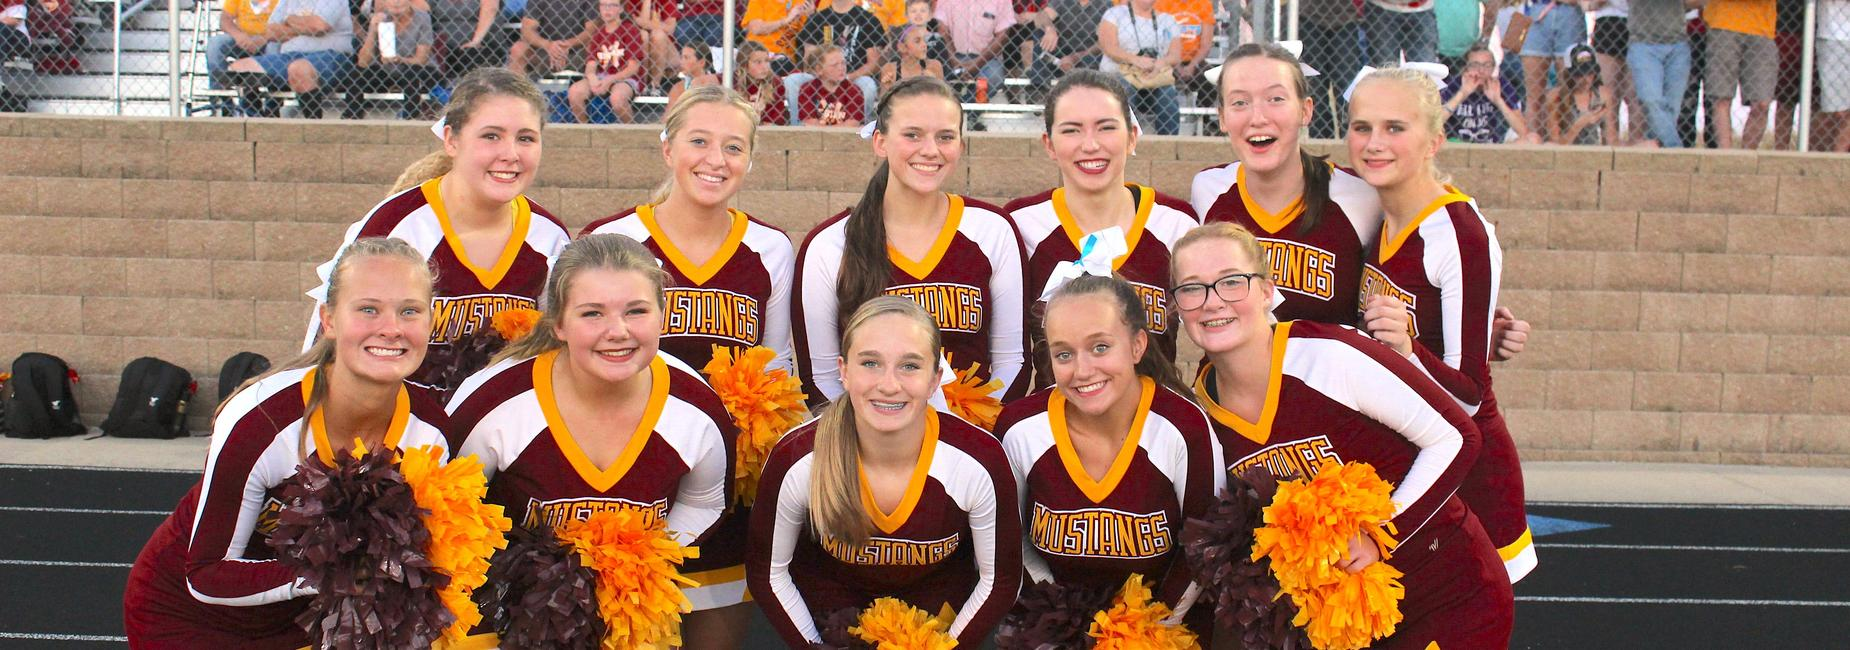 High School Cheerleading Team